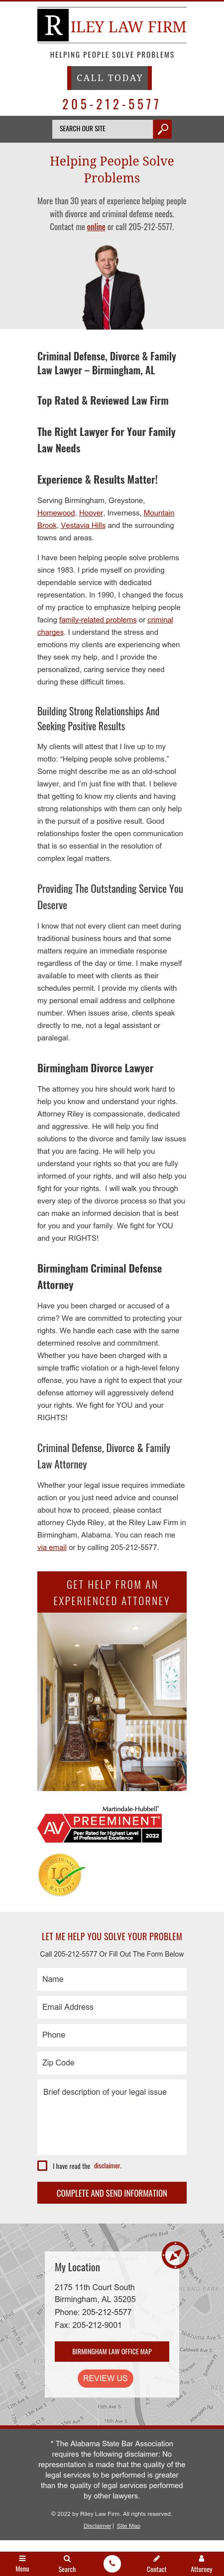 Riley Law Firm - Birmingham AL Lawyers